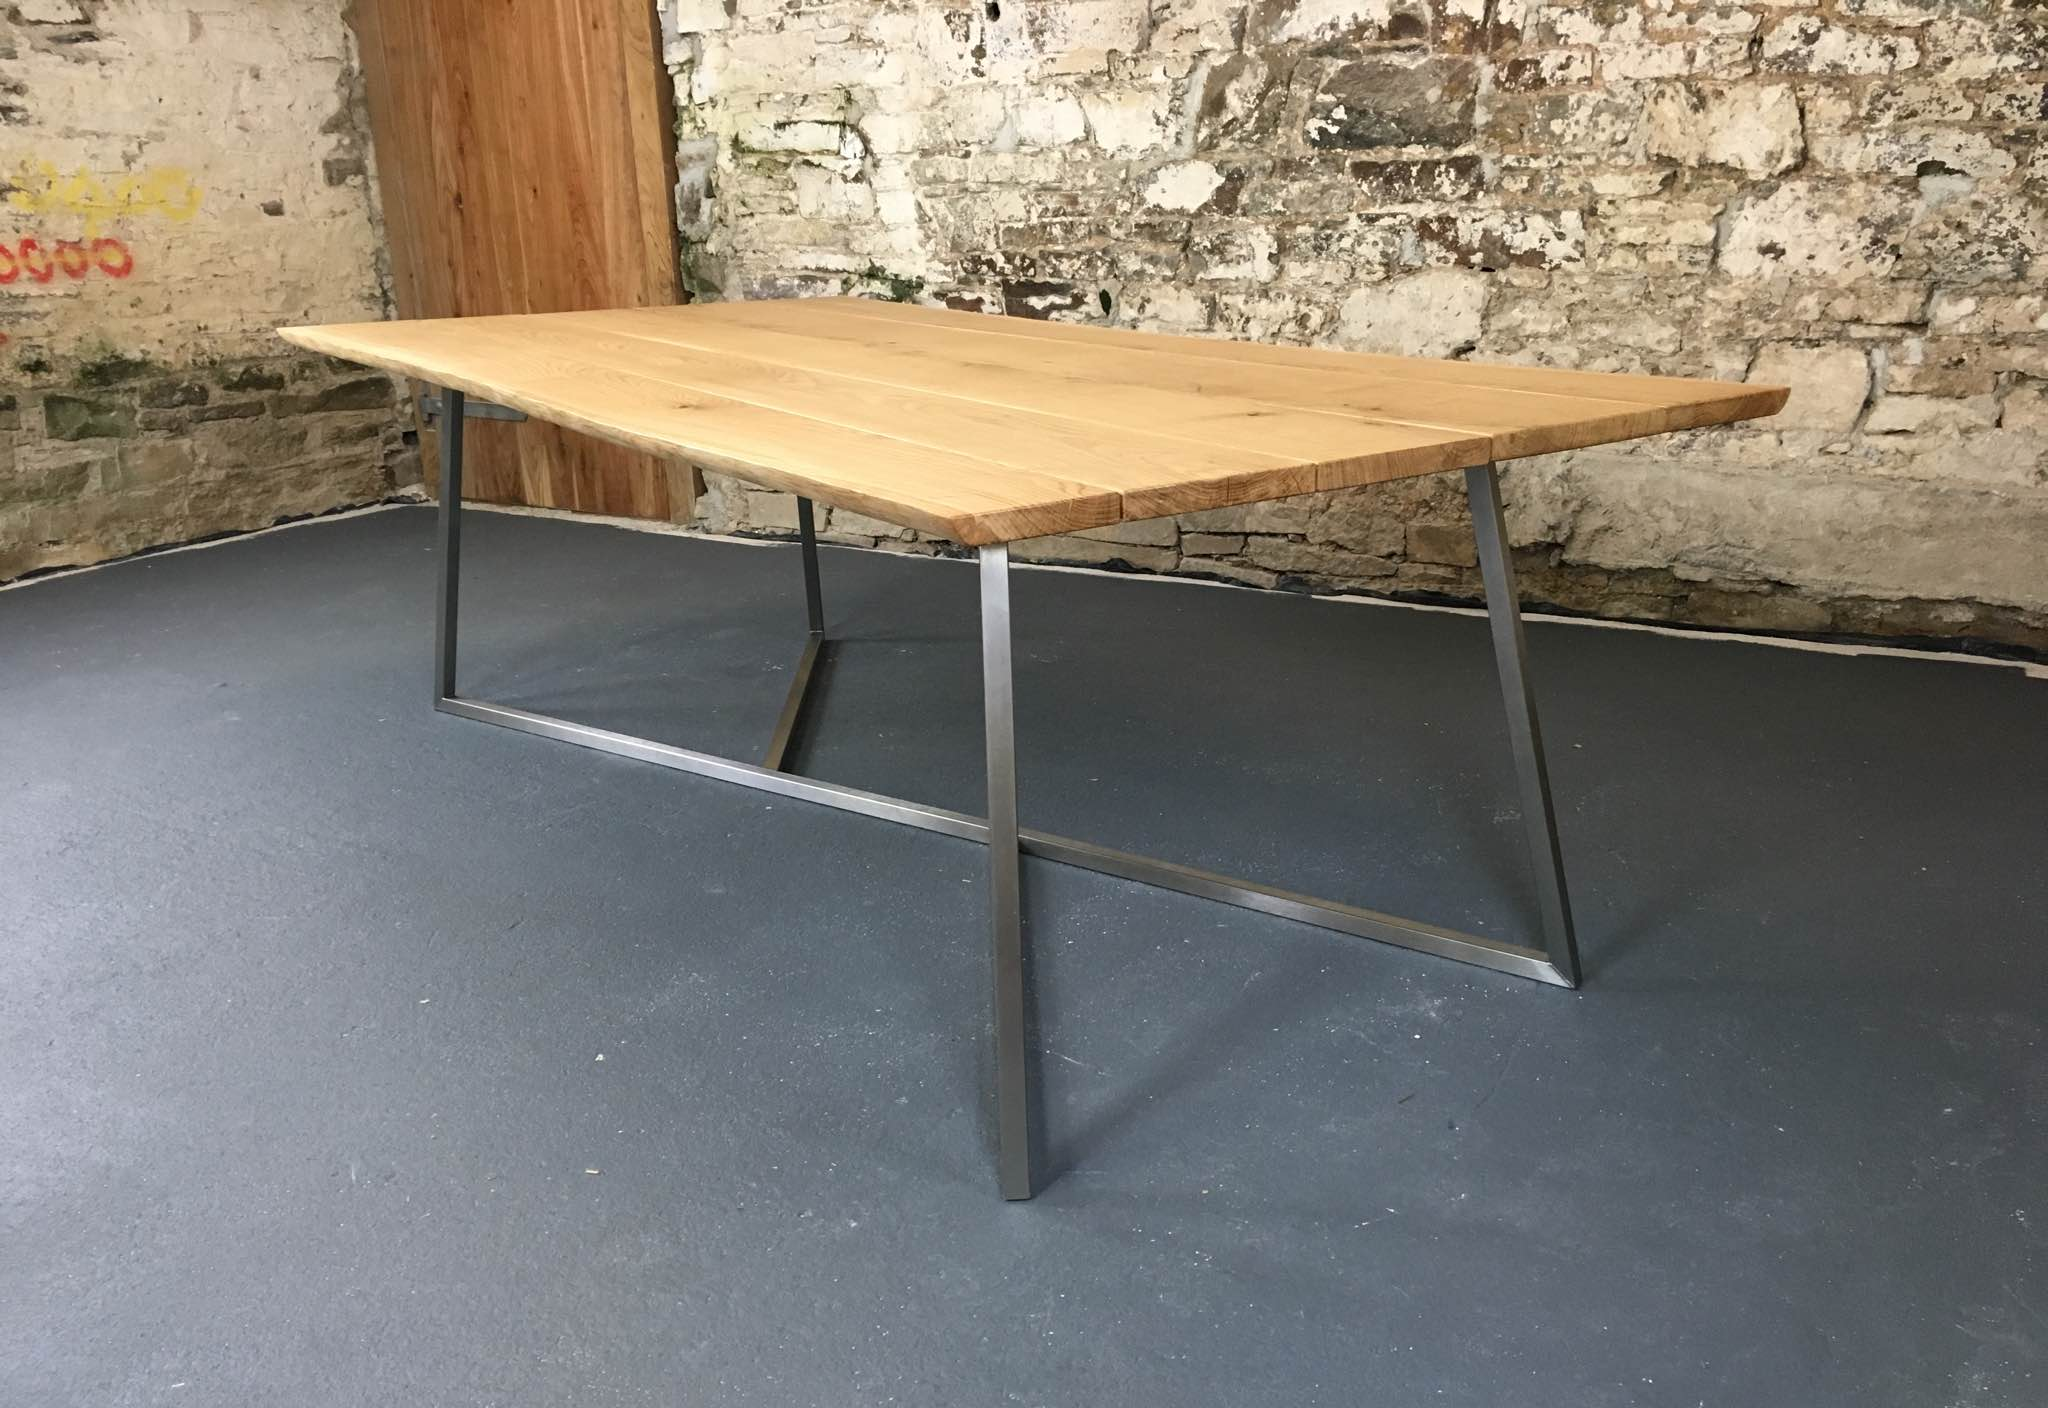 The Scorpion with 30mm thick oak top with natural live-edge